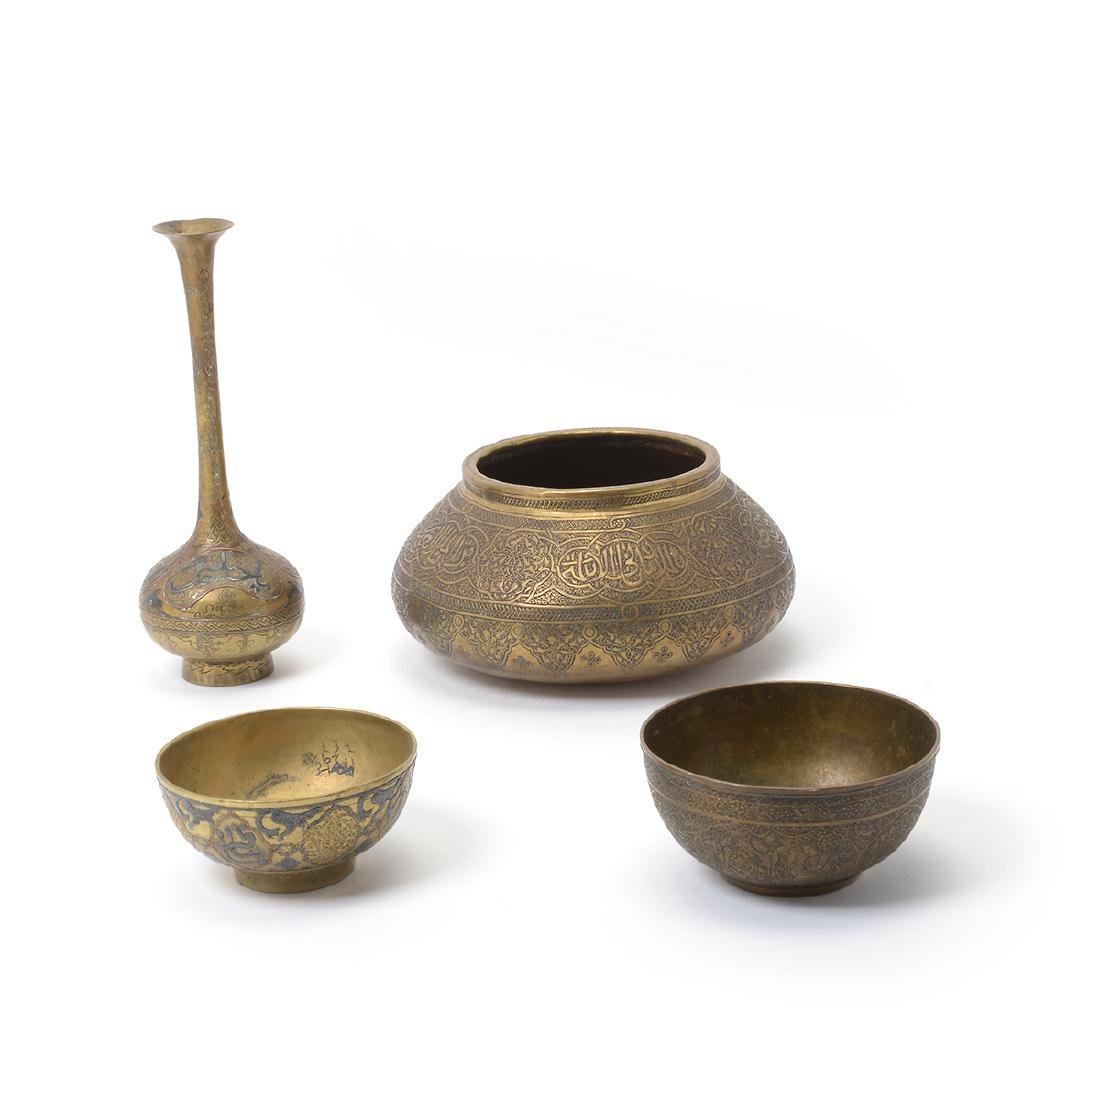 Three Middle Eastern Mixed Metal Vases